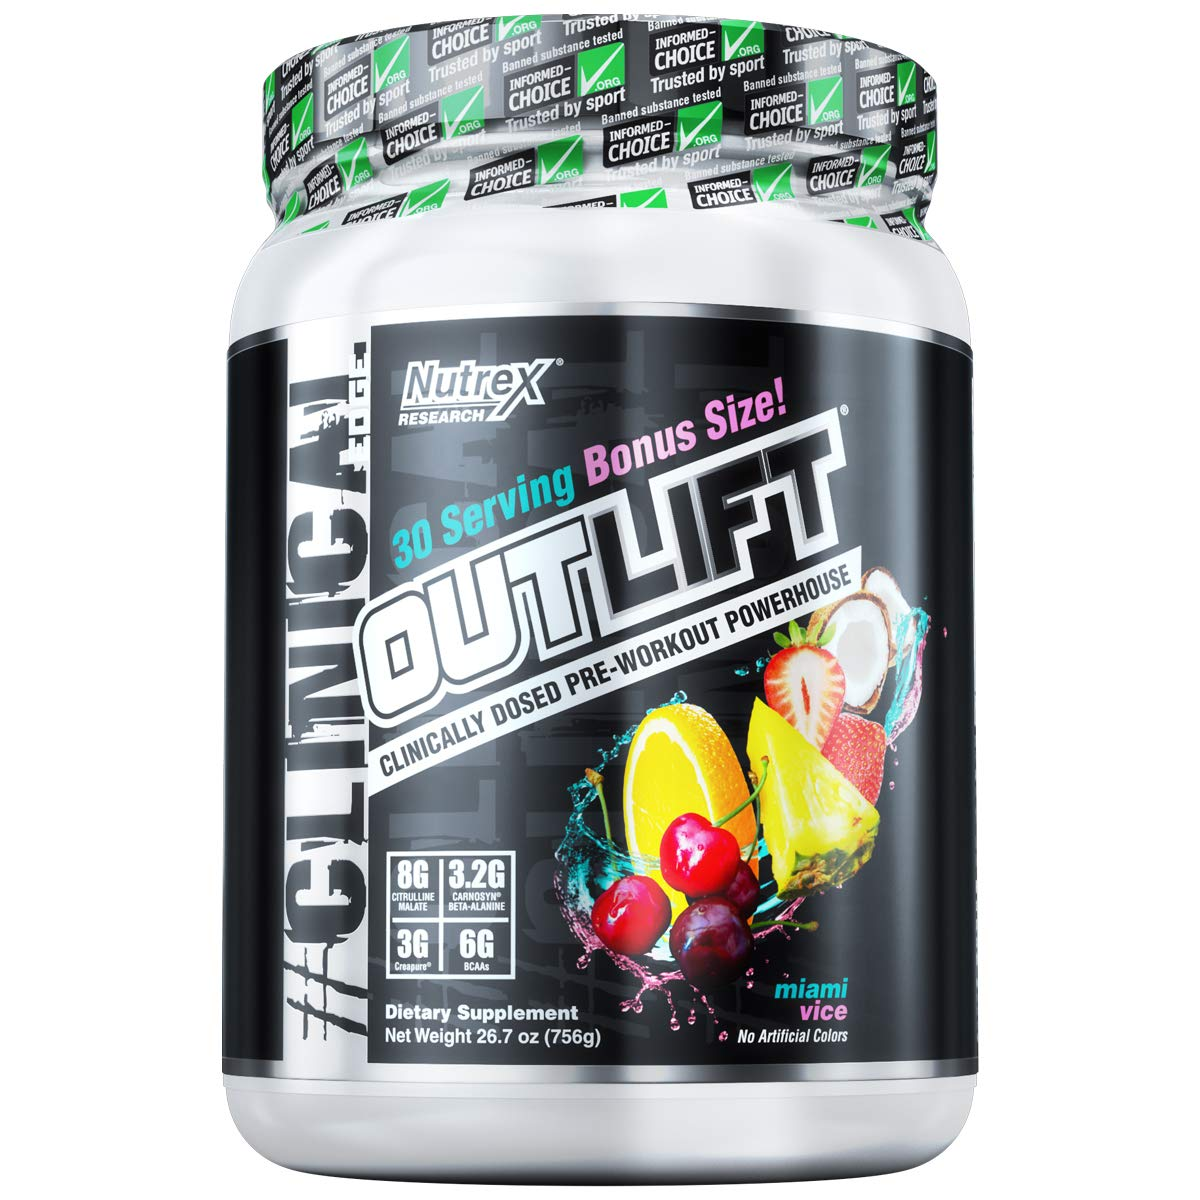 Nutrex Research Oulift Bonus Size Clinically Dosed Pre-Workout Powerhouse, Citrulline, BCAA, Creatine, Beta-Alanine, Taurine, Banned Substance Free Miami Vice 30 Servings